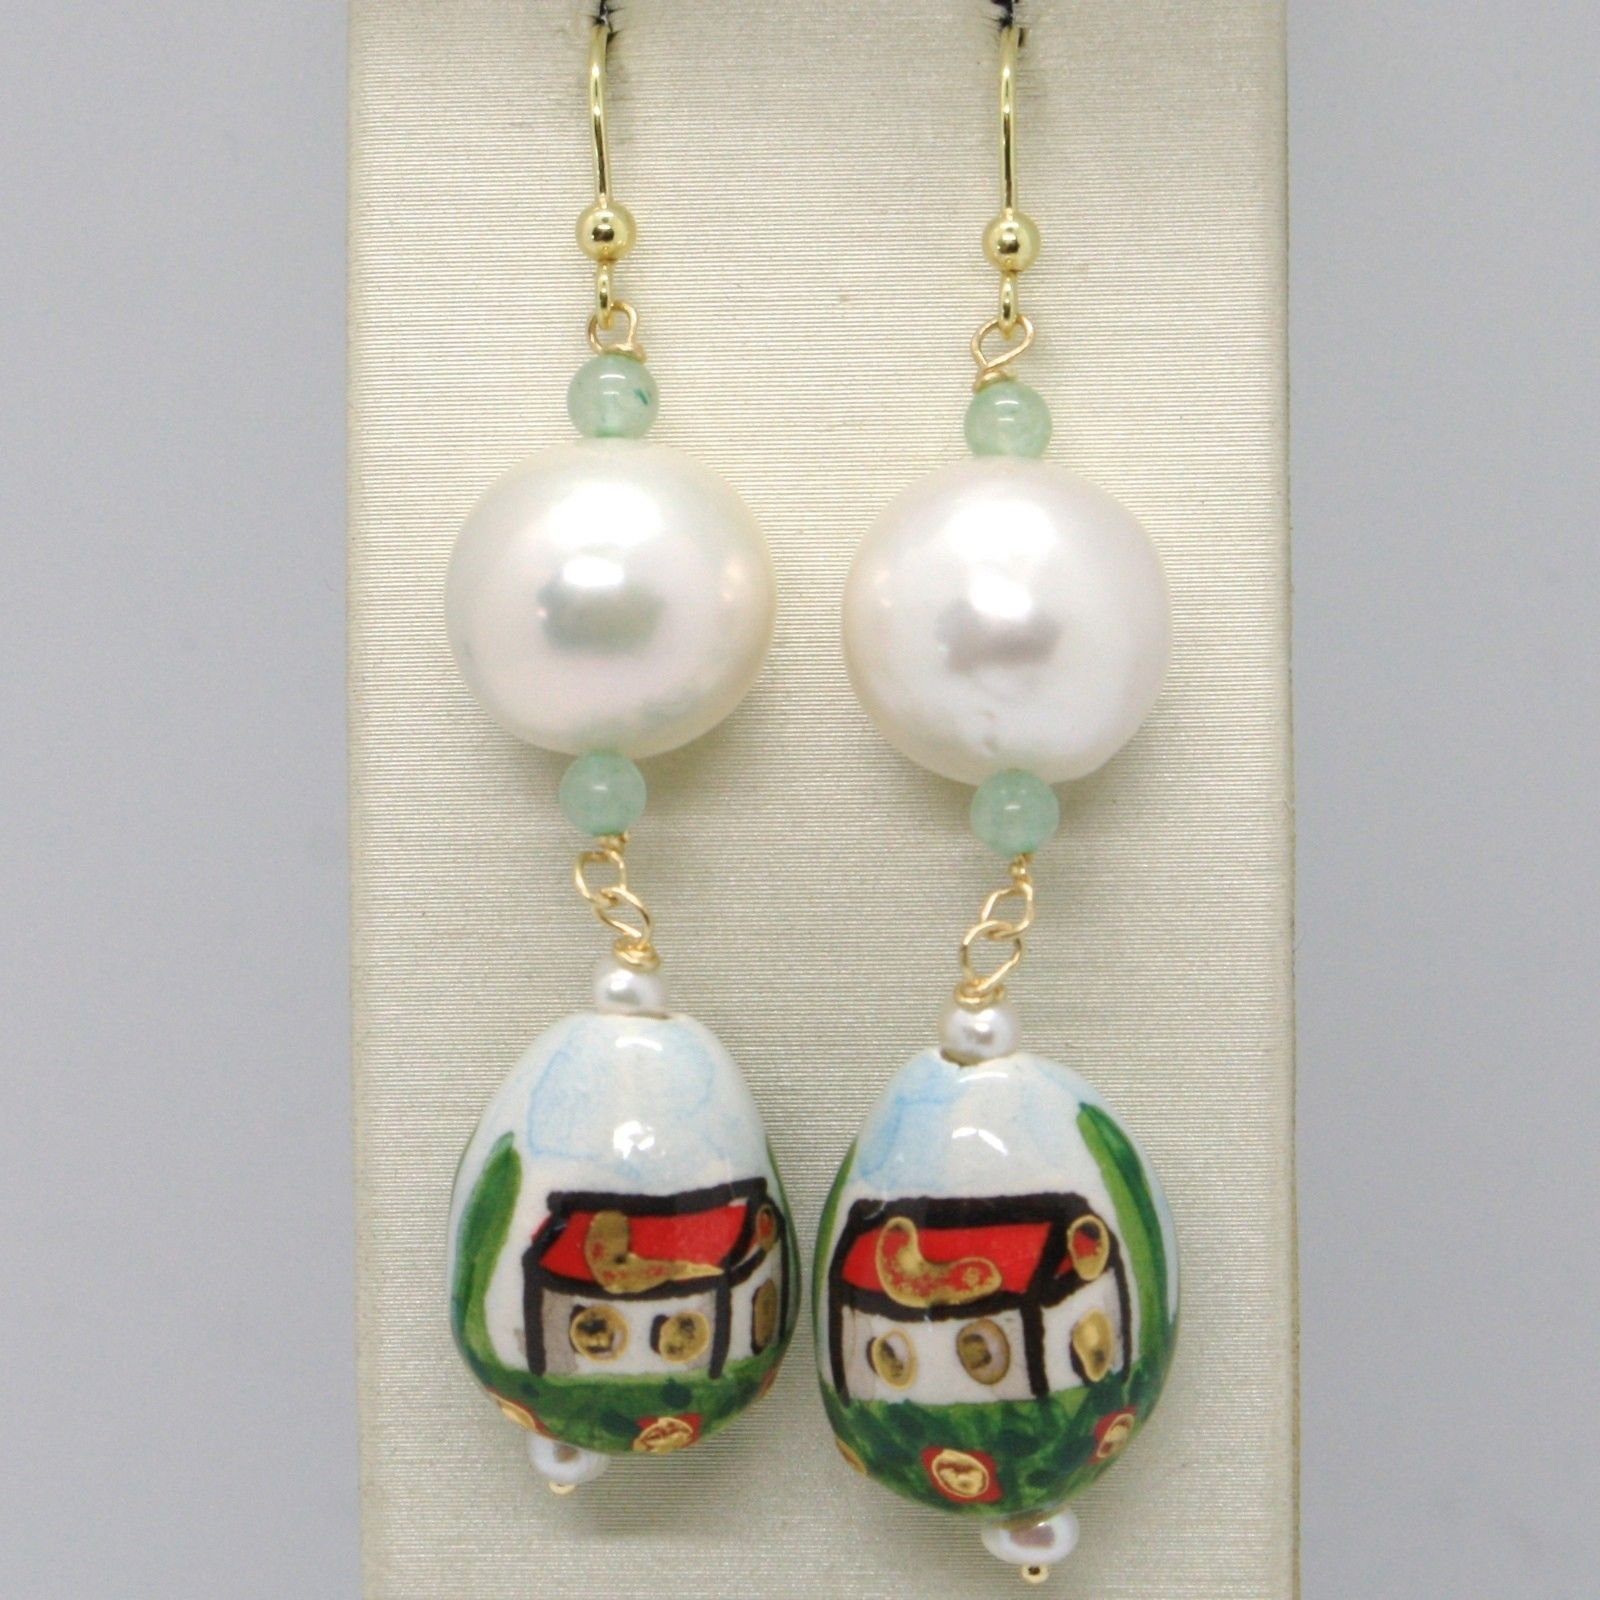 YELLOW GOLD EARRINGS 750 18K PEARLS FW AND DROP HAND-PAINTED MADE IN ITALY